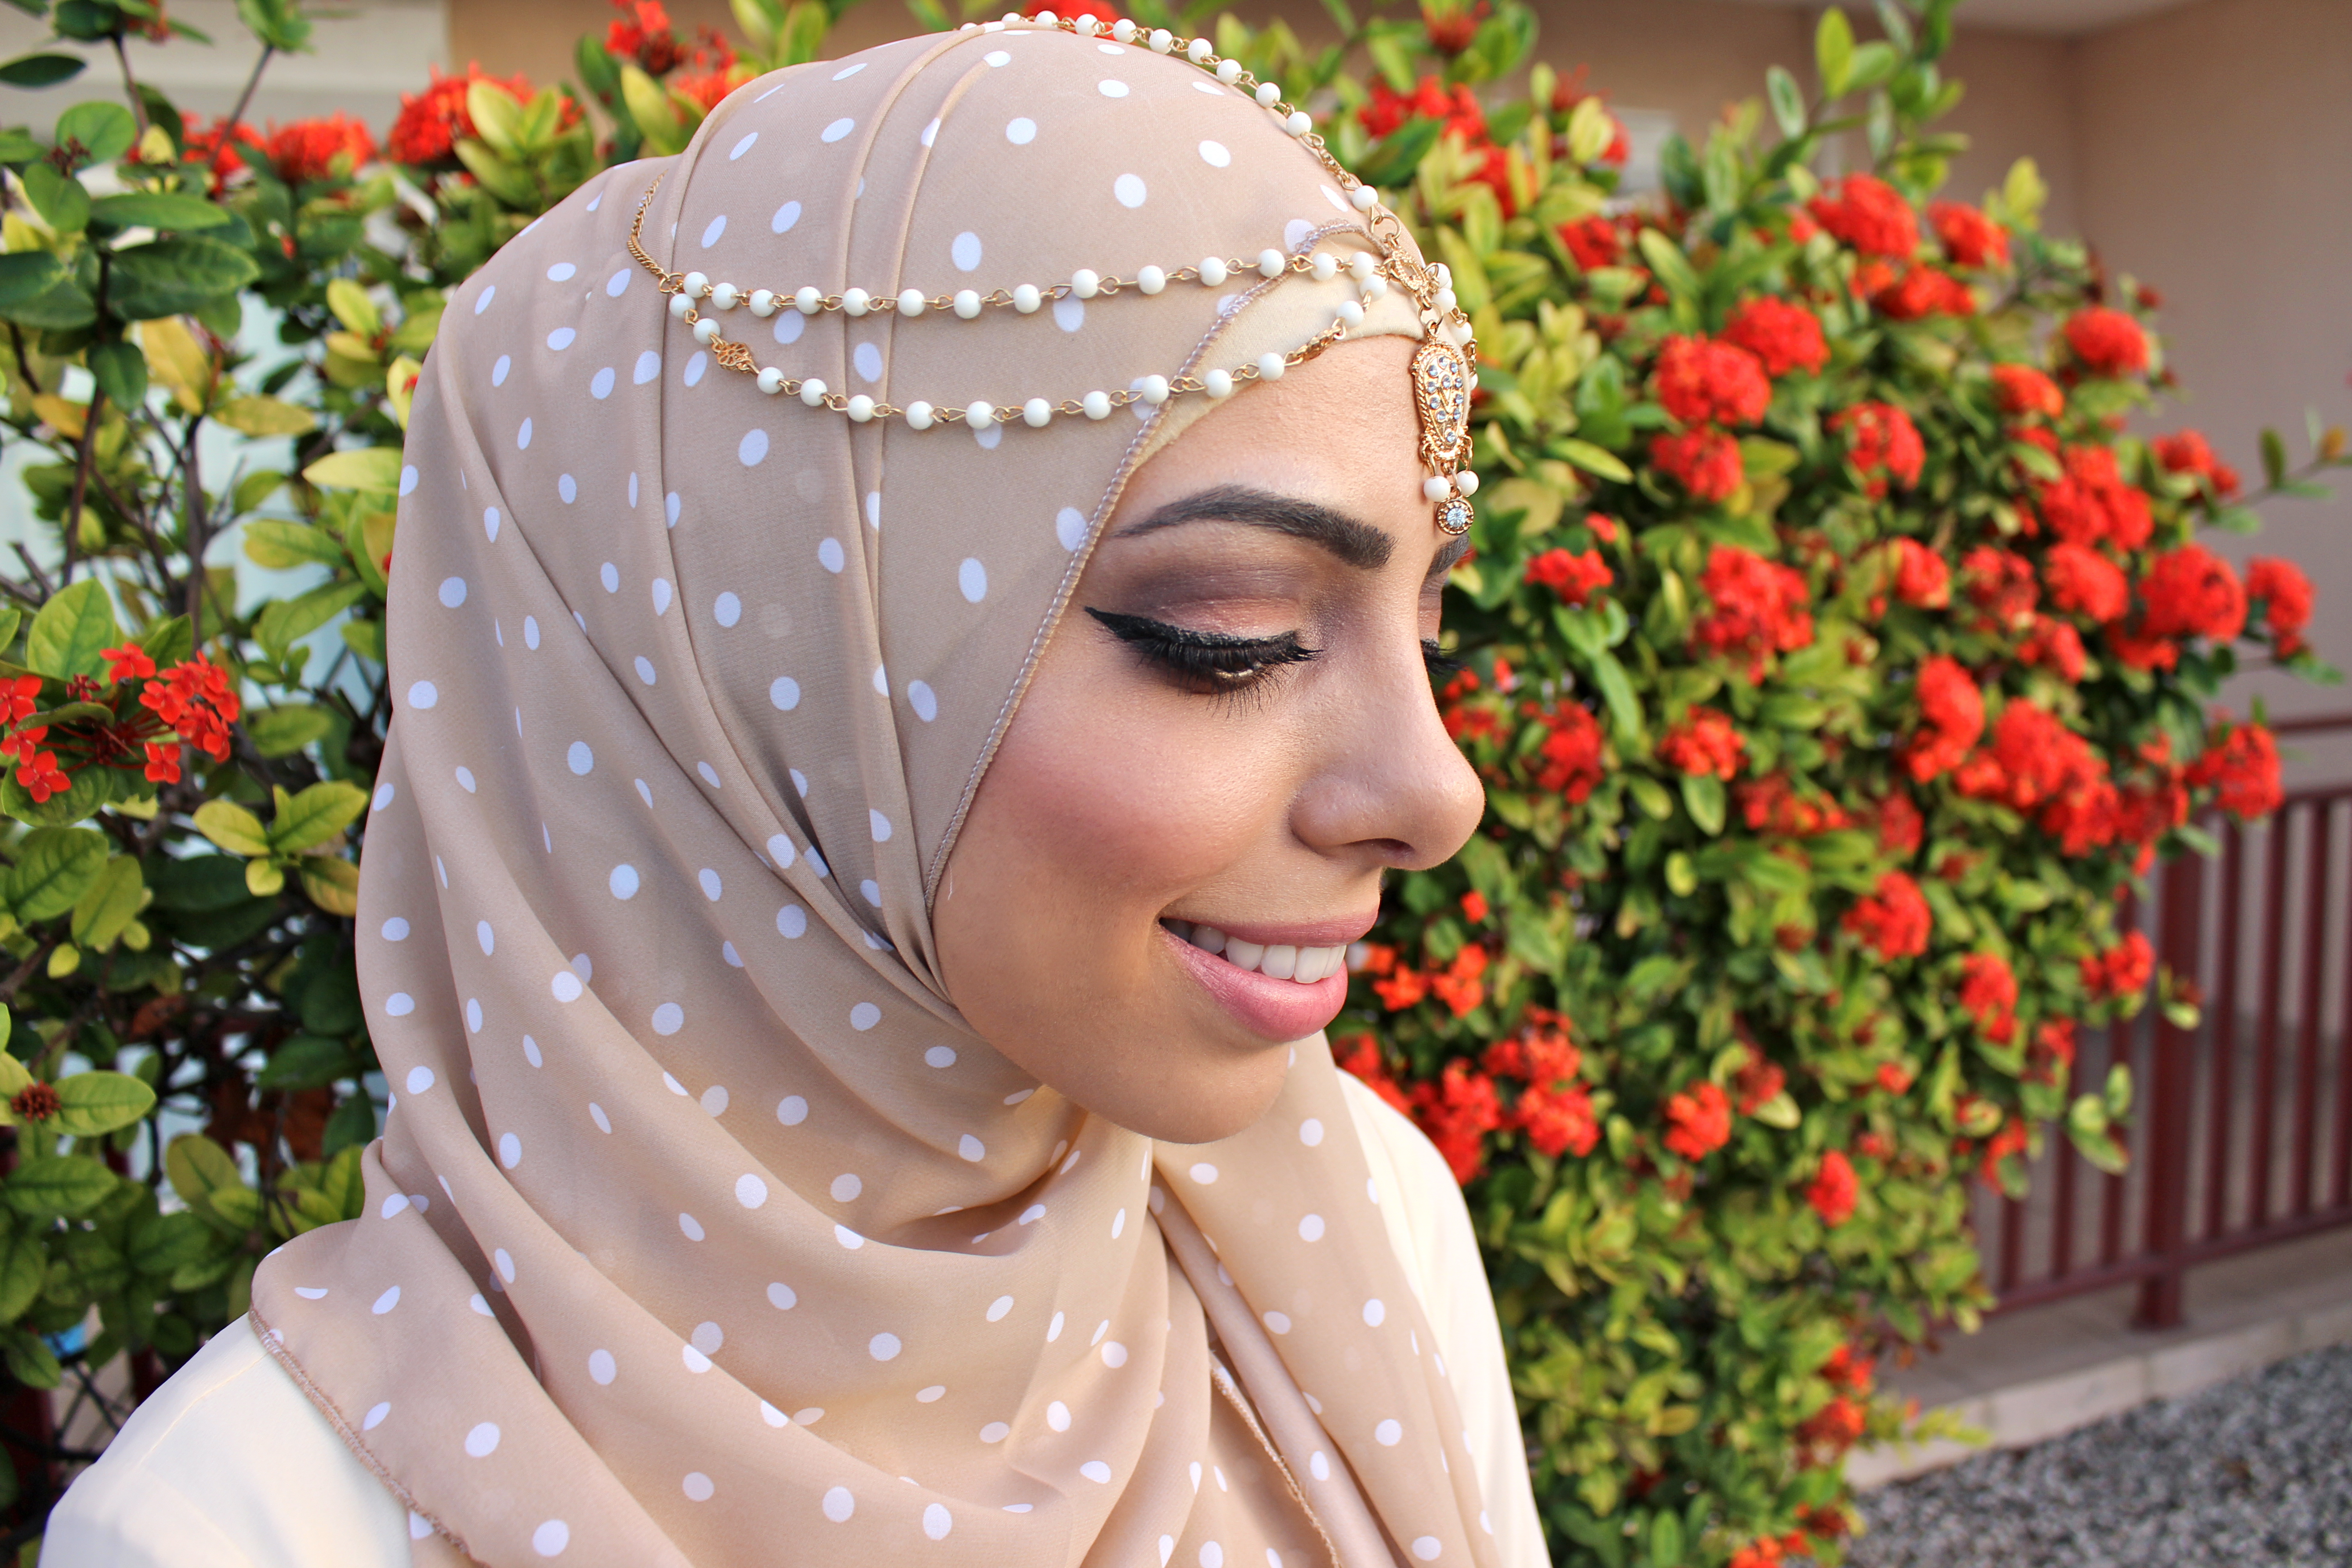 Ootd Heba Jay Headpiece Hijab Austere Attire Sold Out Other Neutral Here